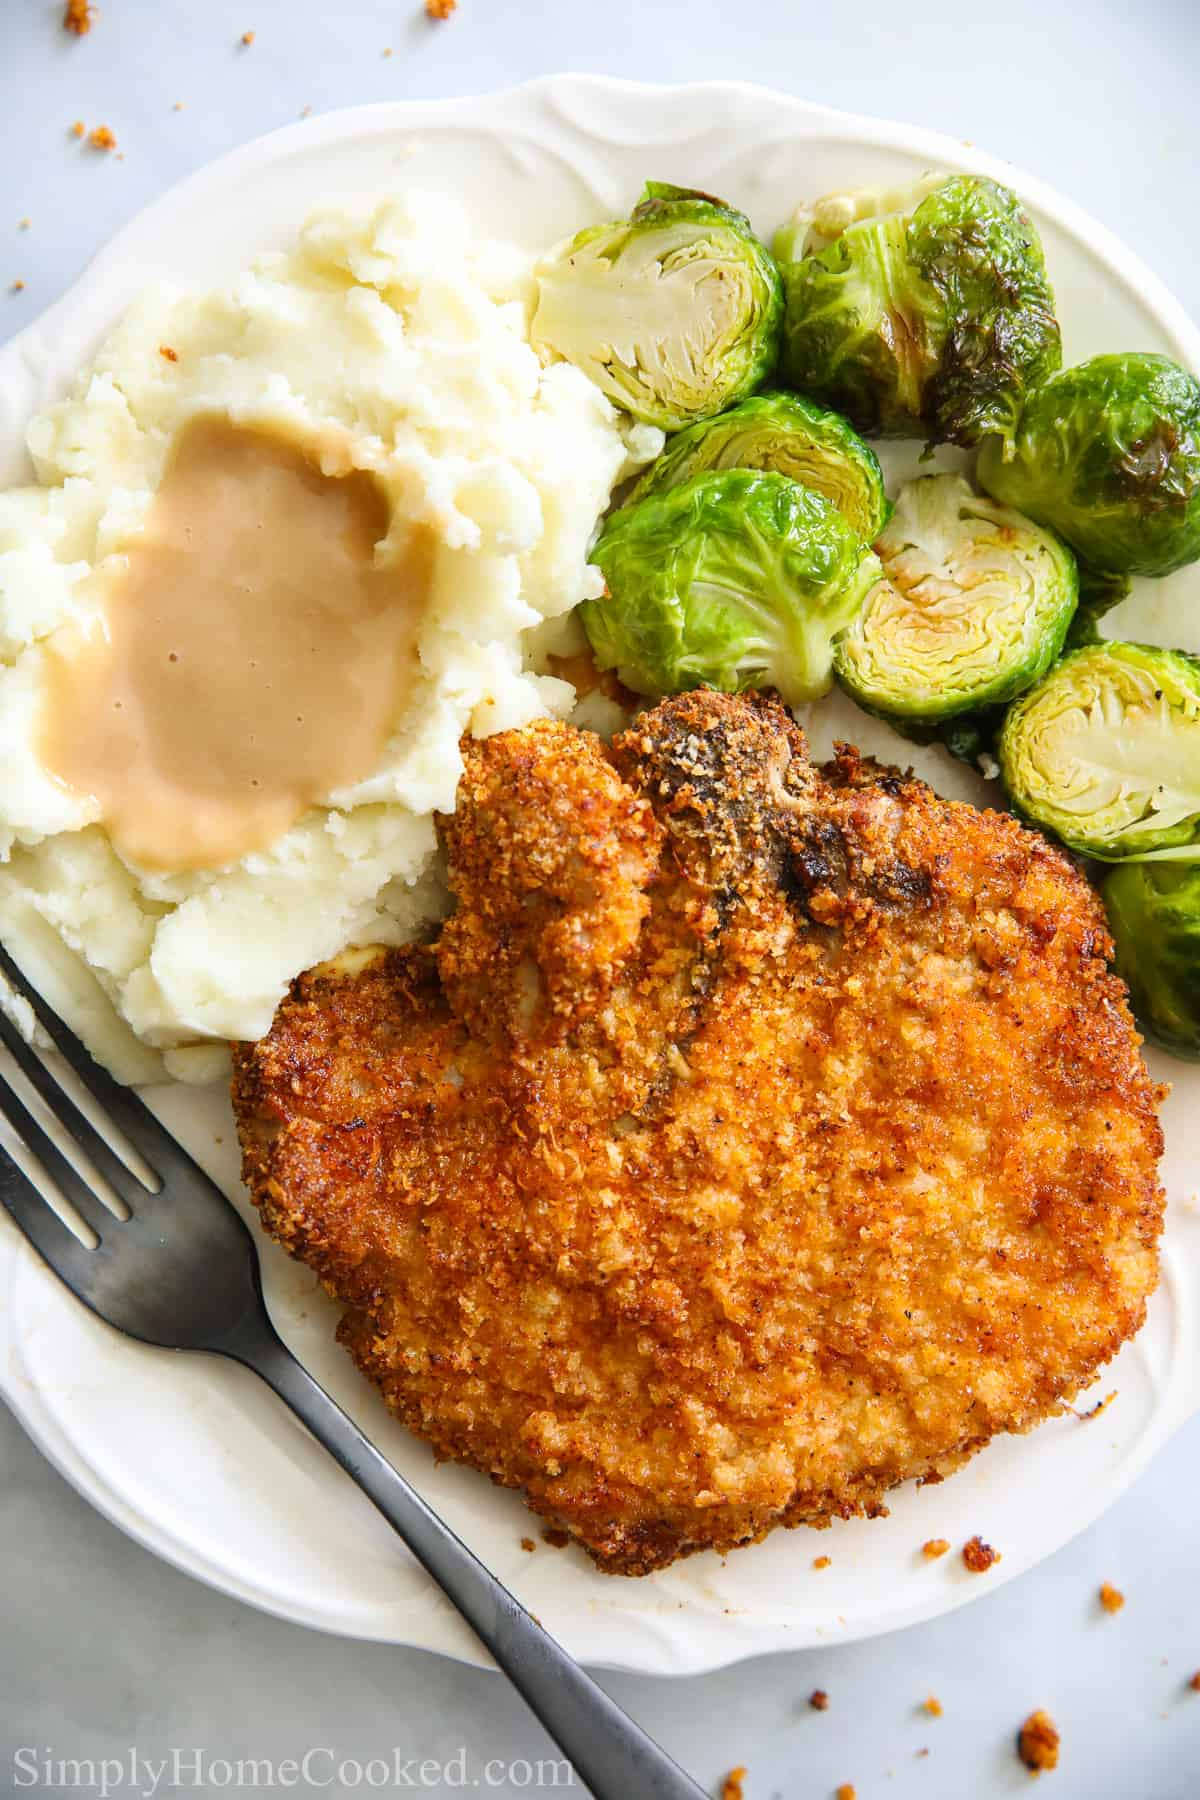 Plate with Juicy Air Fryer Pork Chops, brussels sprouts, and mashed potatoes and gravy, with a fork.